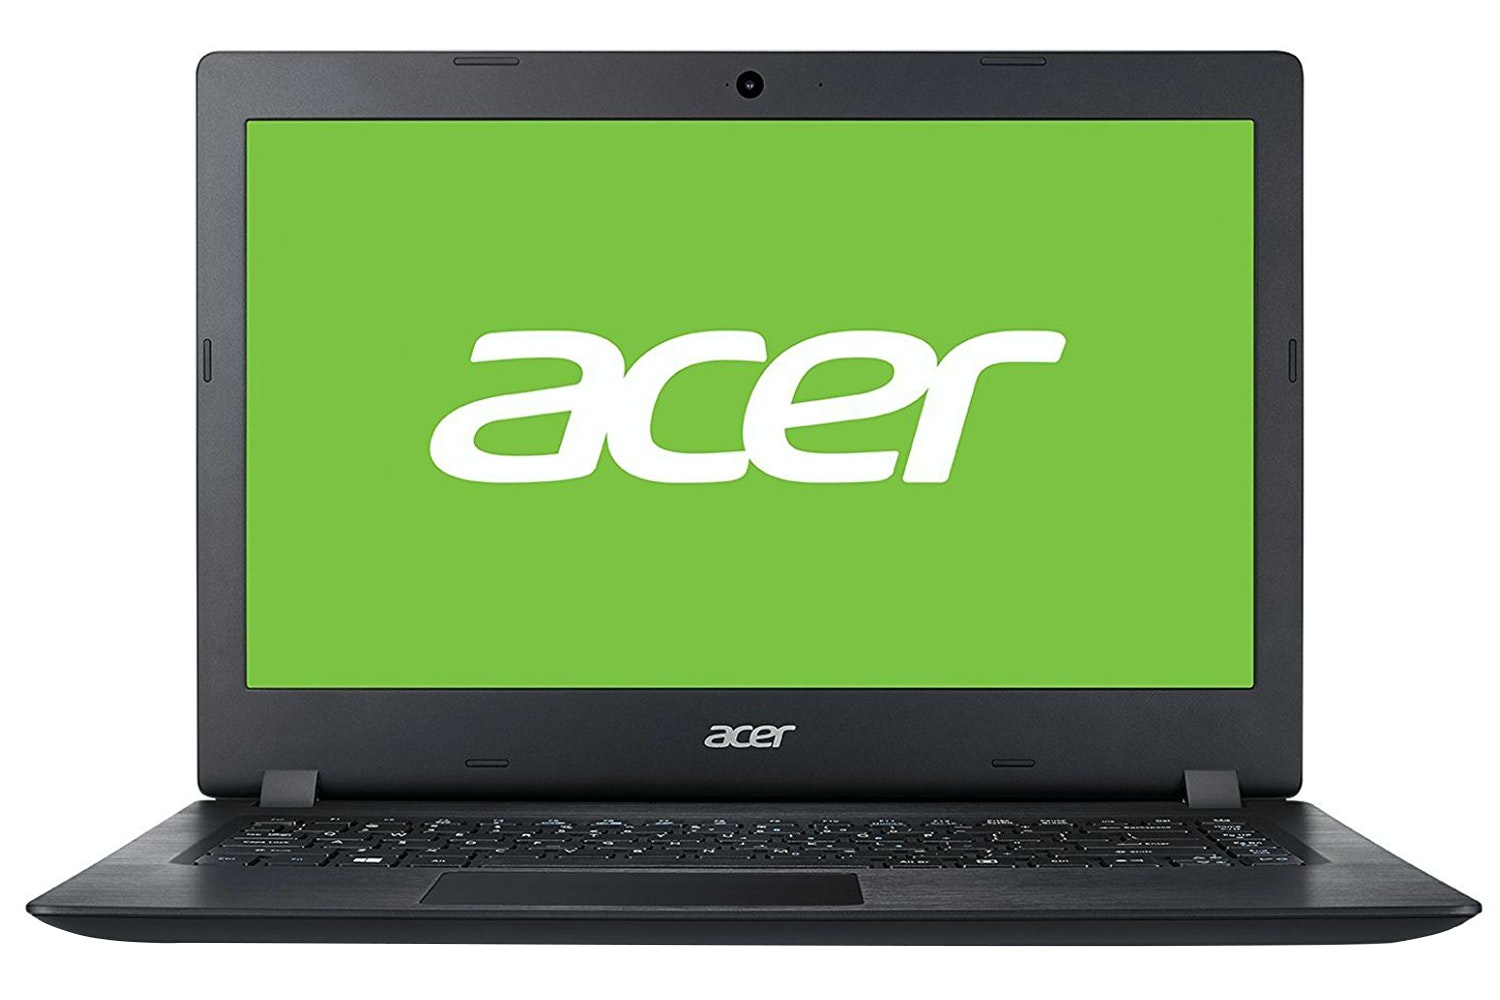 ACER 79G DRIVERS WINDOWS